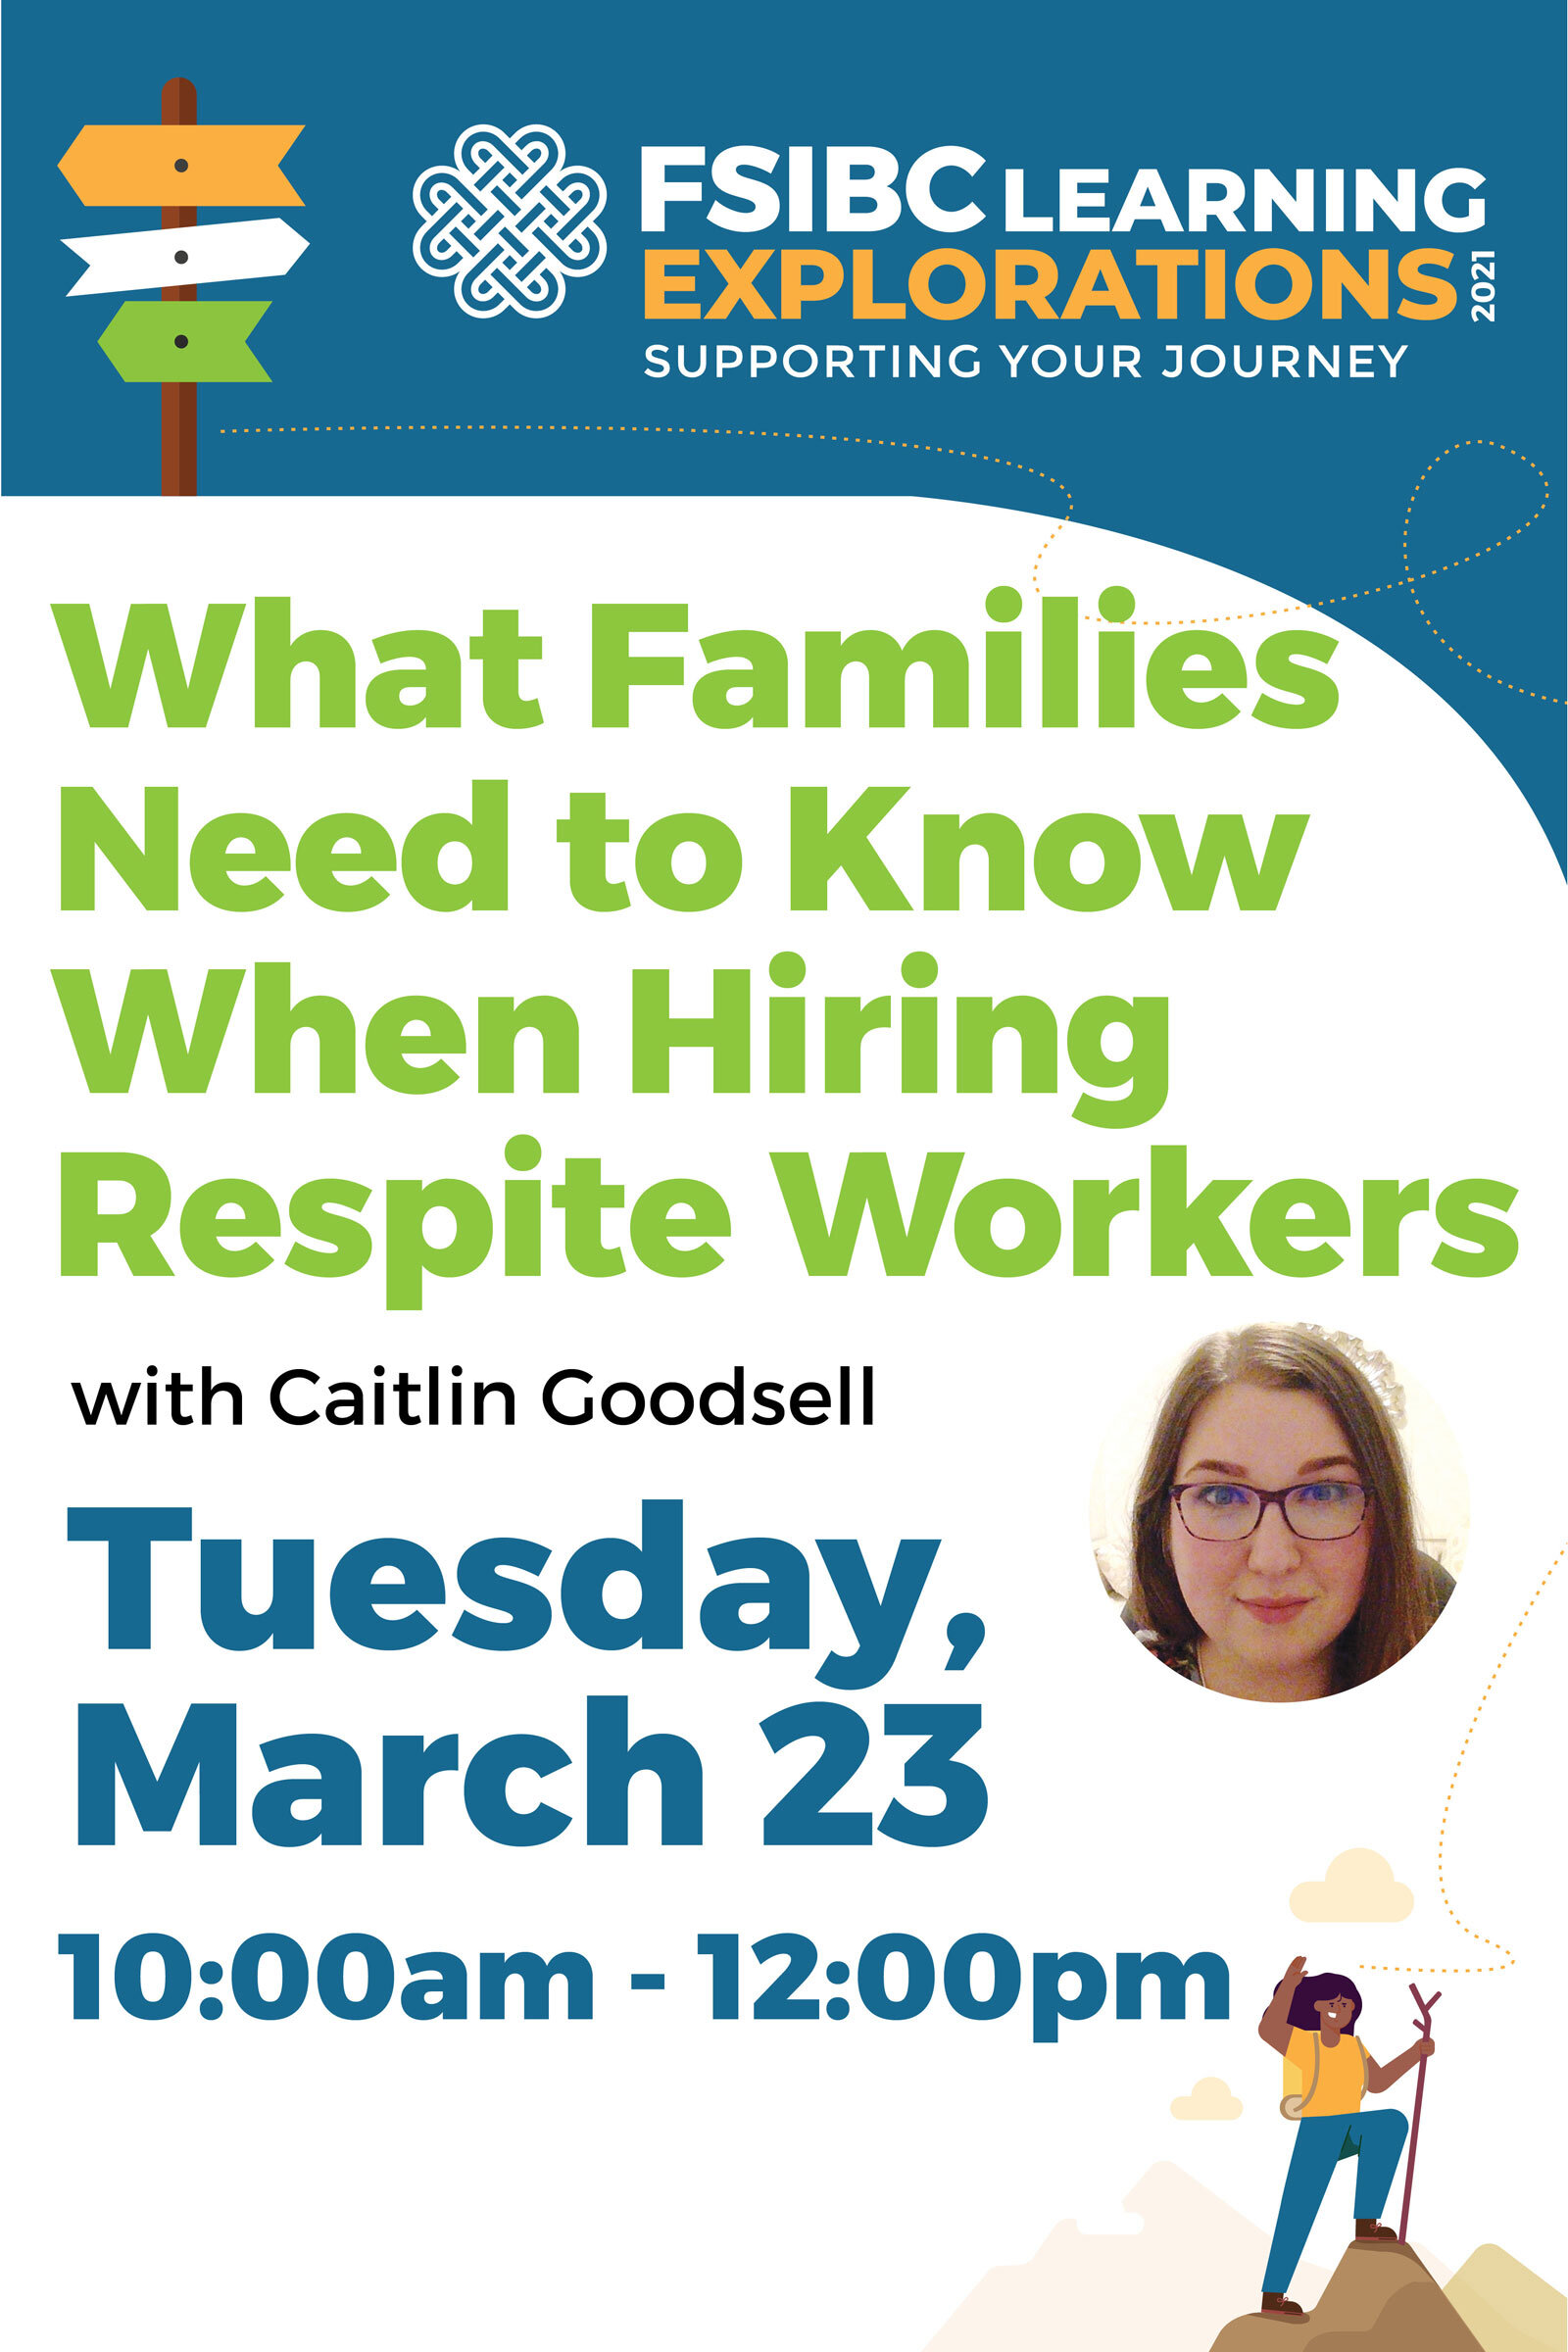 FSI Learning Explorations - What Families Need to Know When Hiring Respite Workers